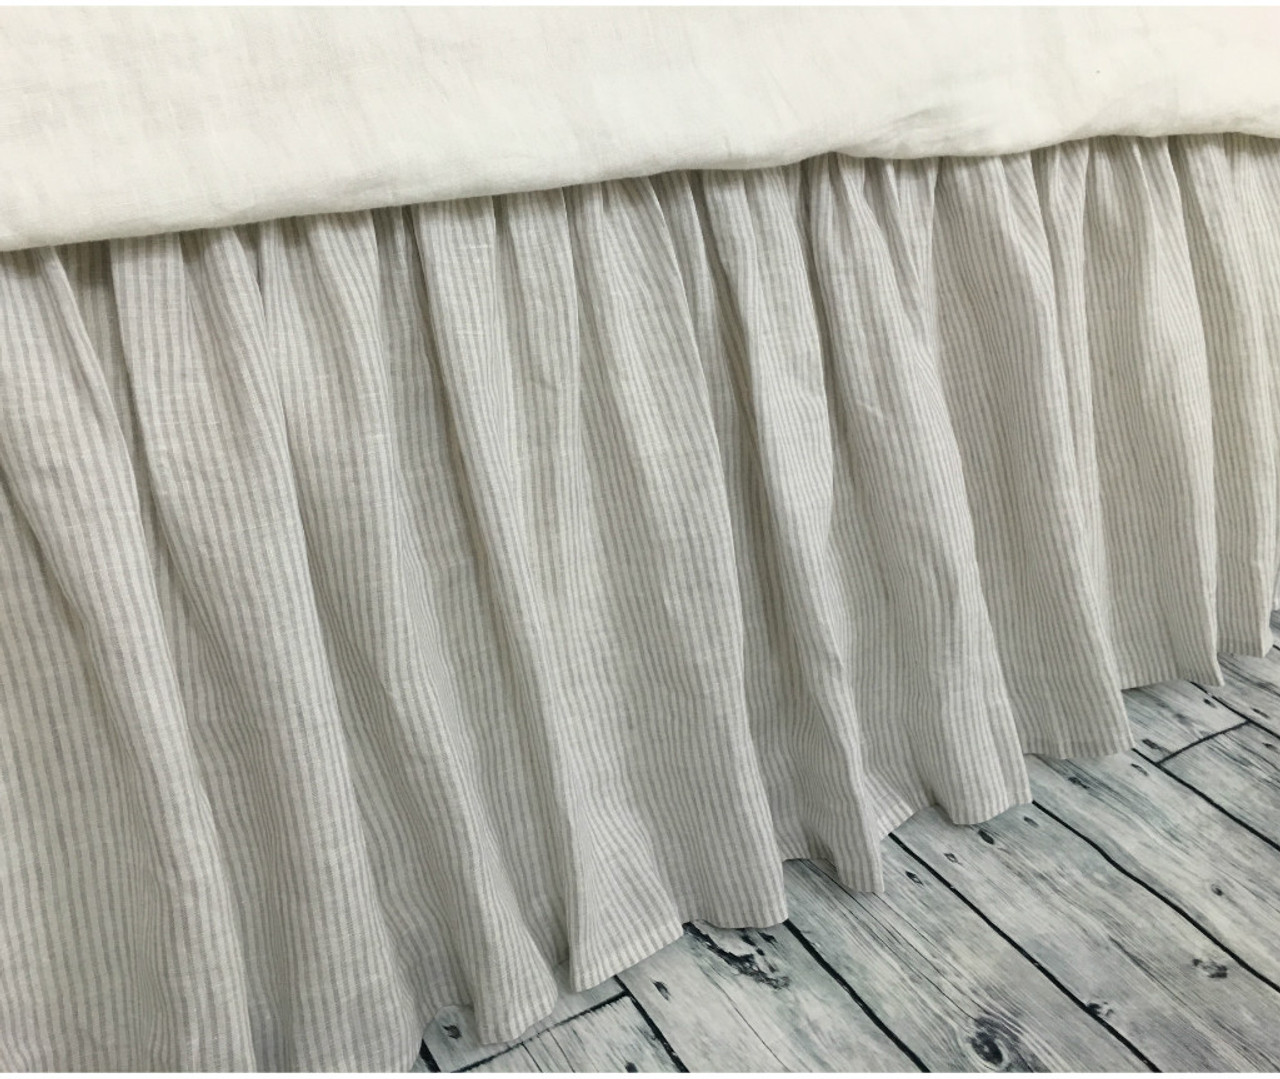 Stone Gray Ticking Stripe Bed Skirt Ticking Stripe Dust Ruffle Country Bed Skirts 15 24 Drop 100 Natural Linen Handcrafted By Superior Custom Linens